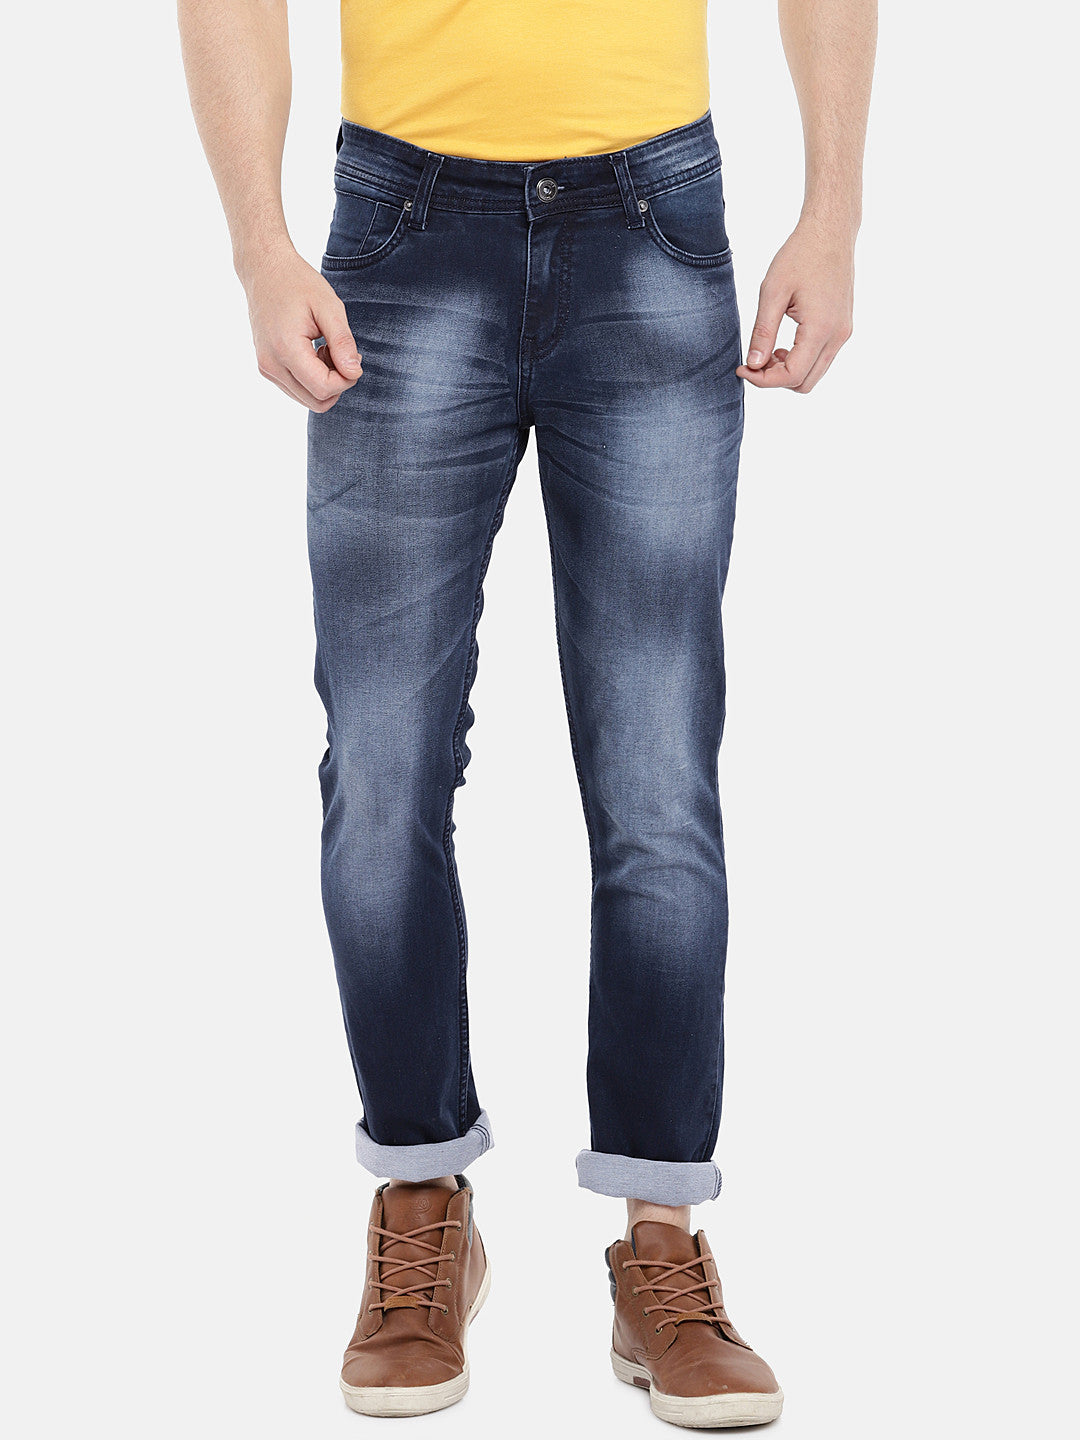 Navy Blue Regular Fit Mid-Rise Clean Look Jeans-1